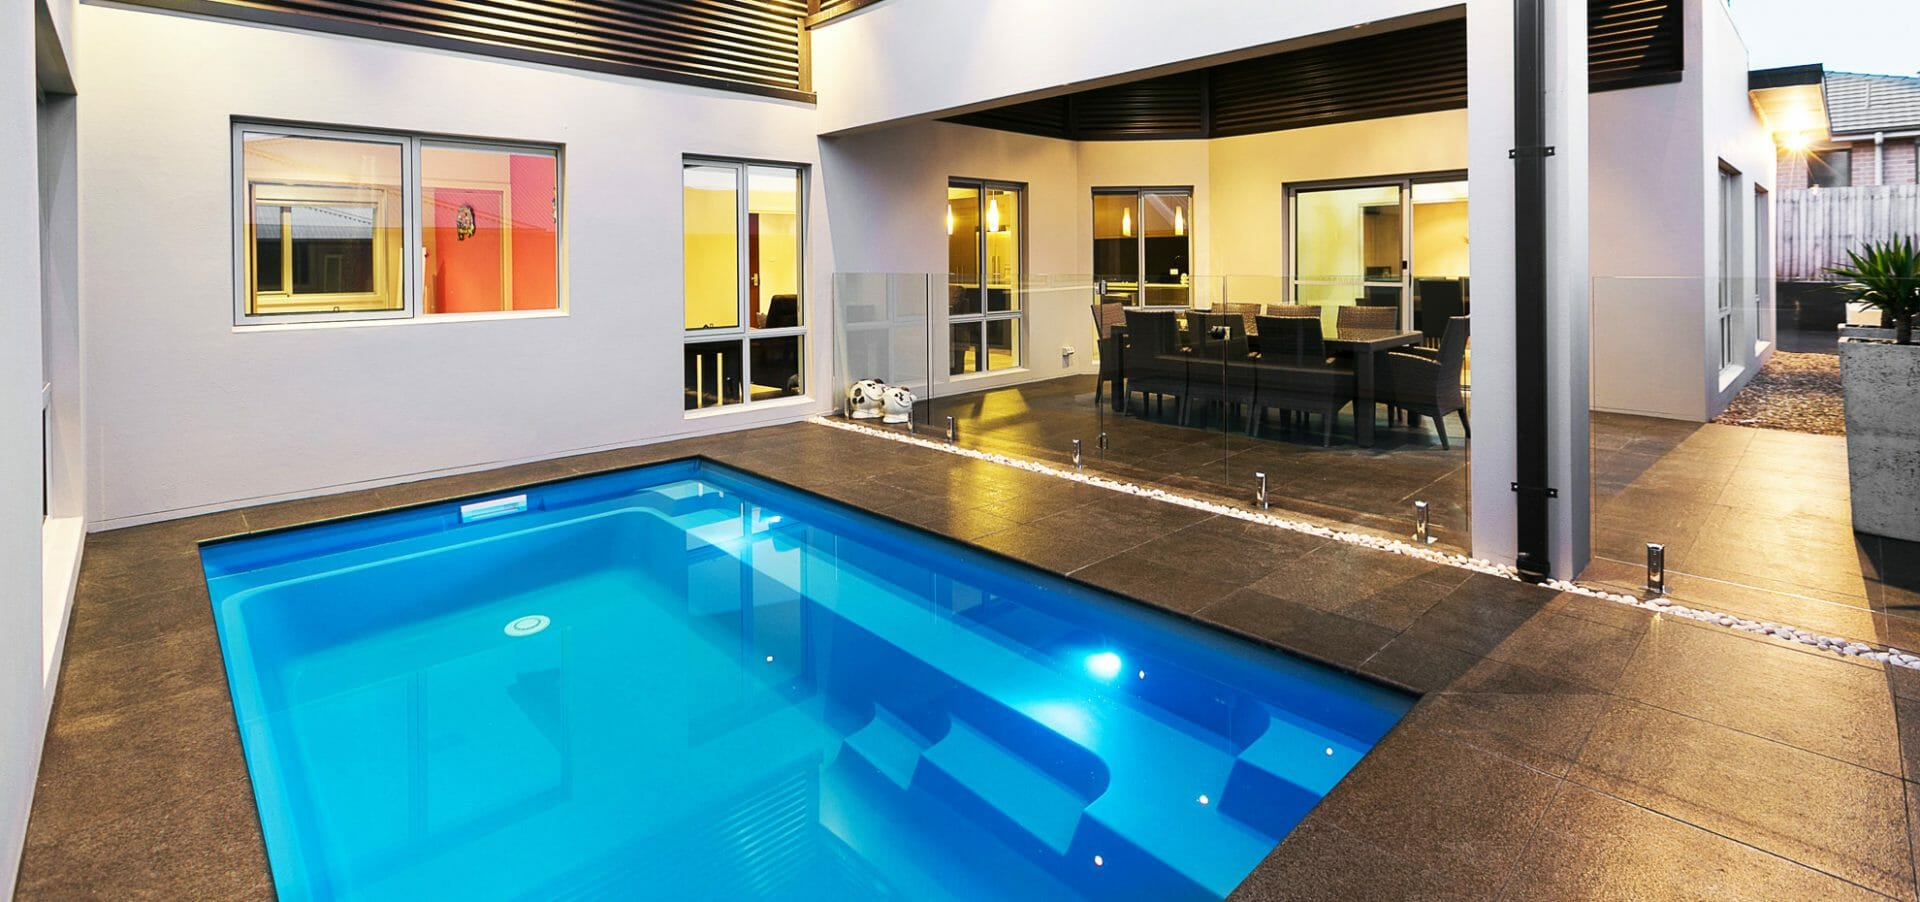 Harmony Fibreglass Pool with coping and lighting by Leisure Pools